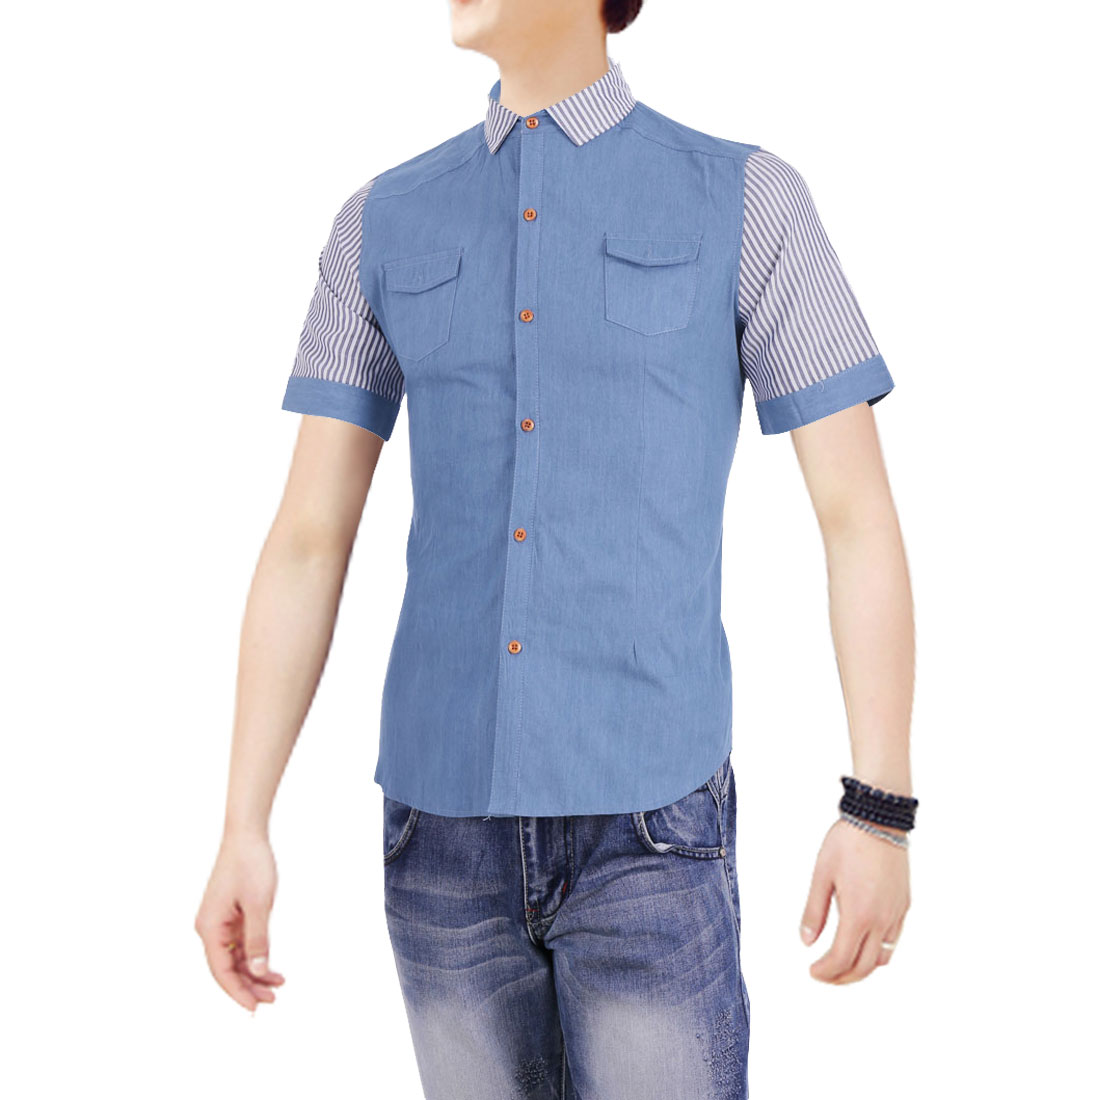 Man Newly Single-Breasted Front Striped Short Sleeve Light Blue Denim Shirt S